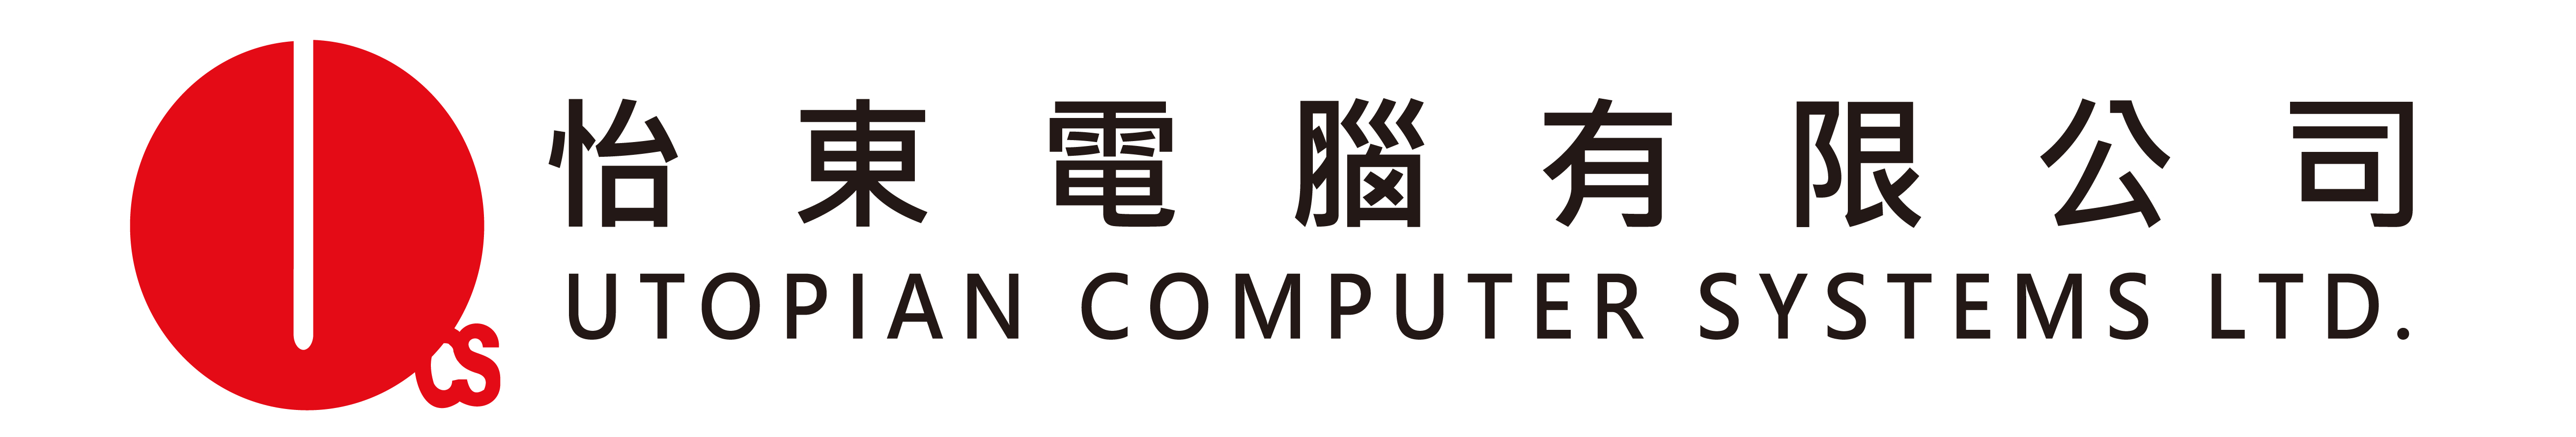 Utopian Computer Systems Ltd.